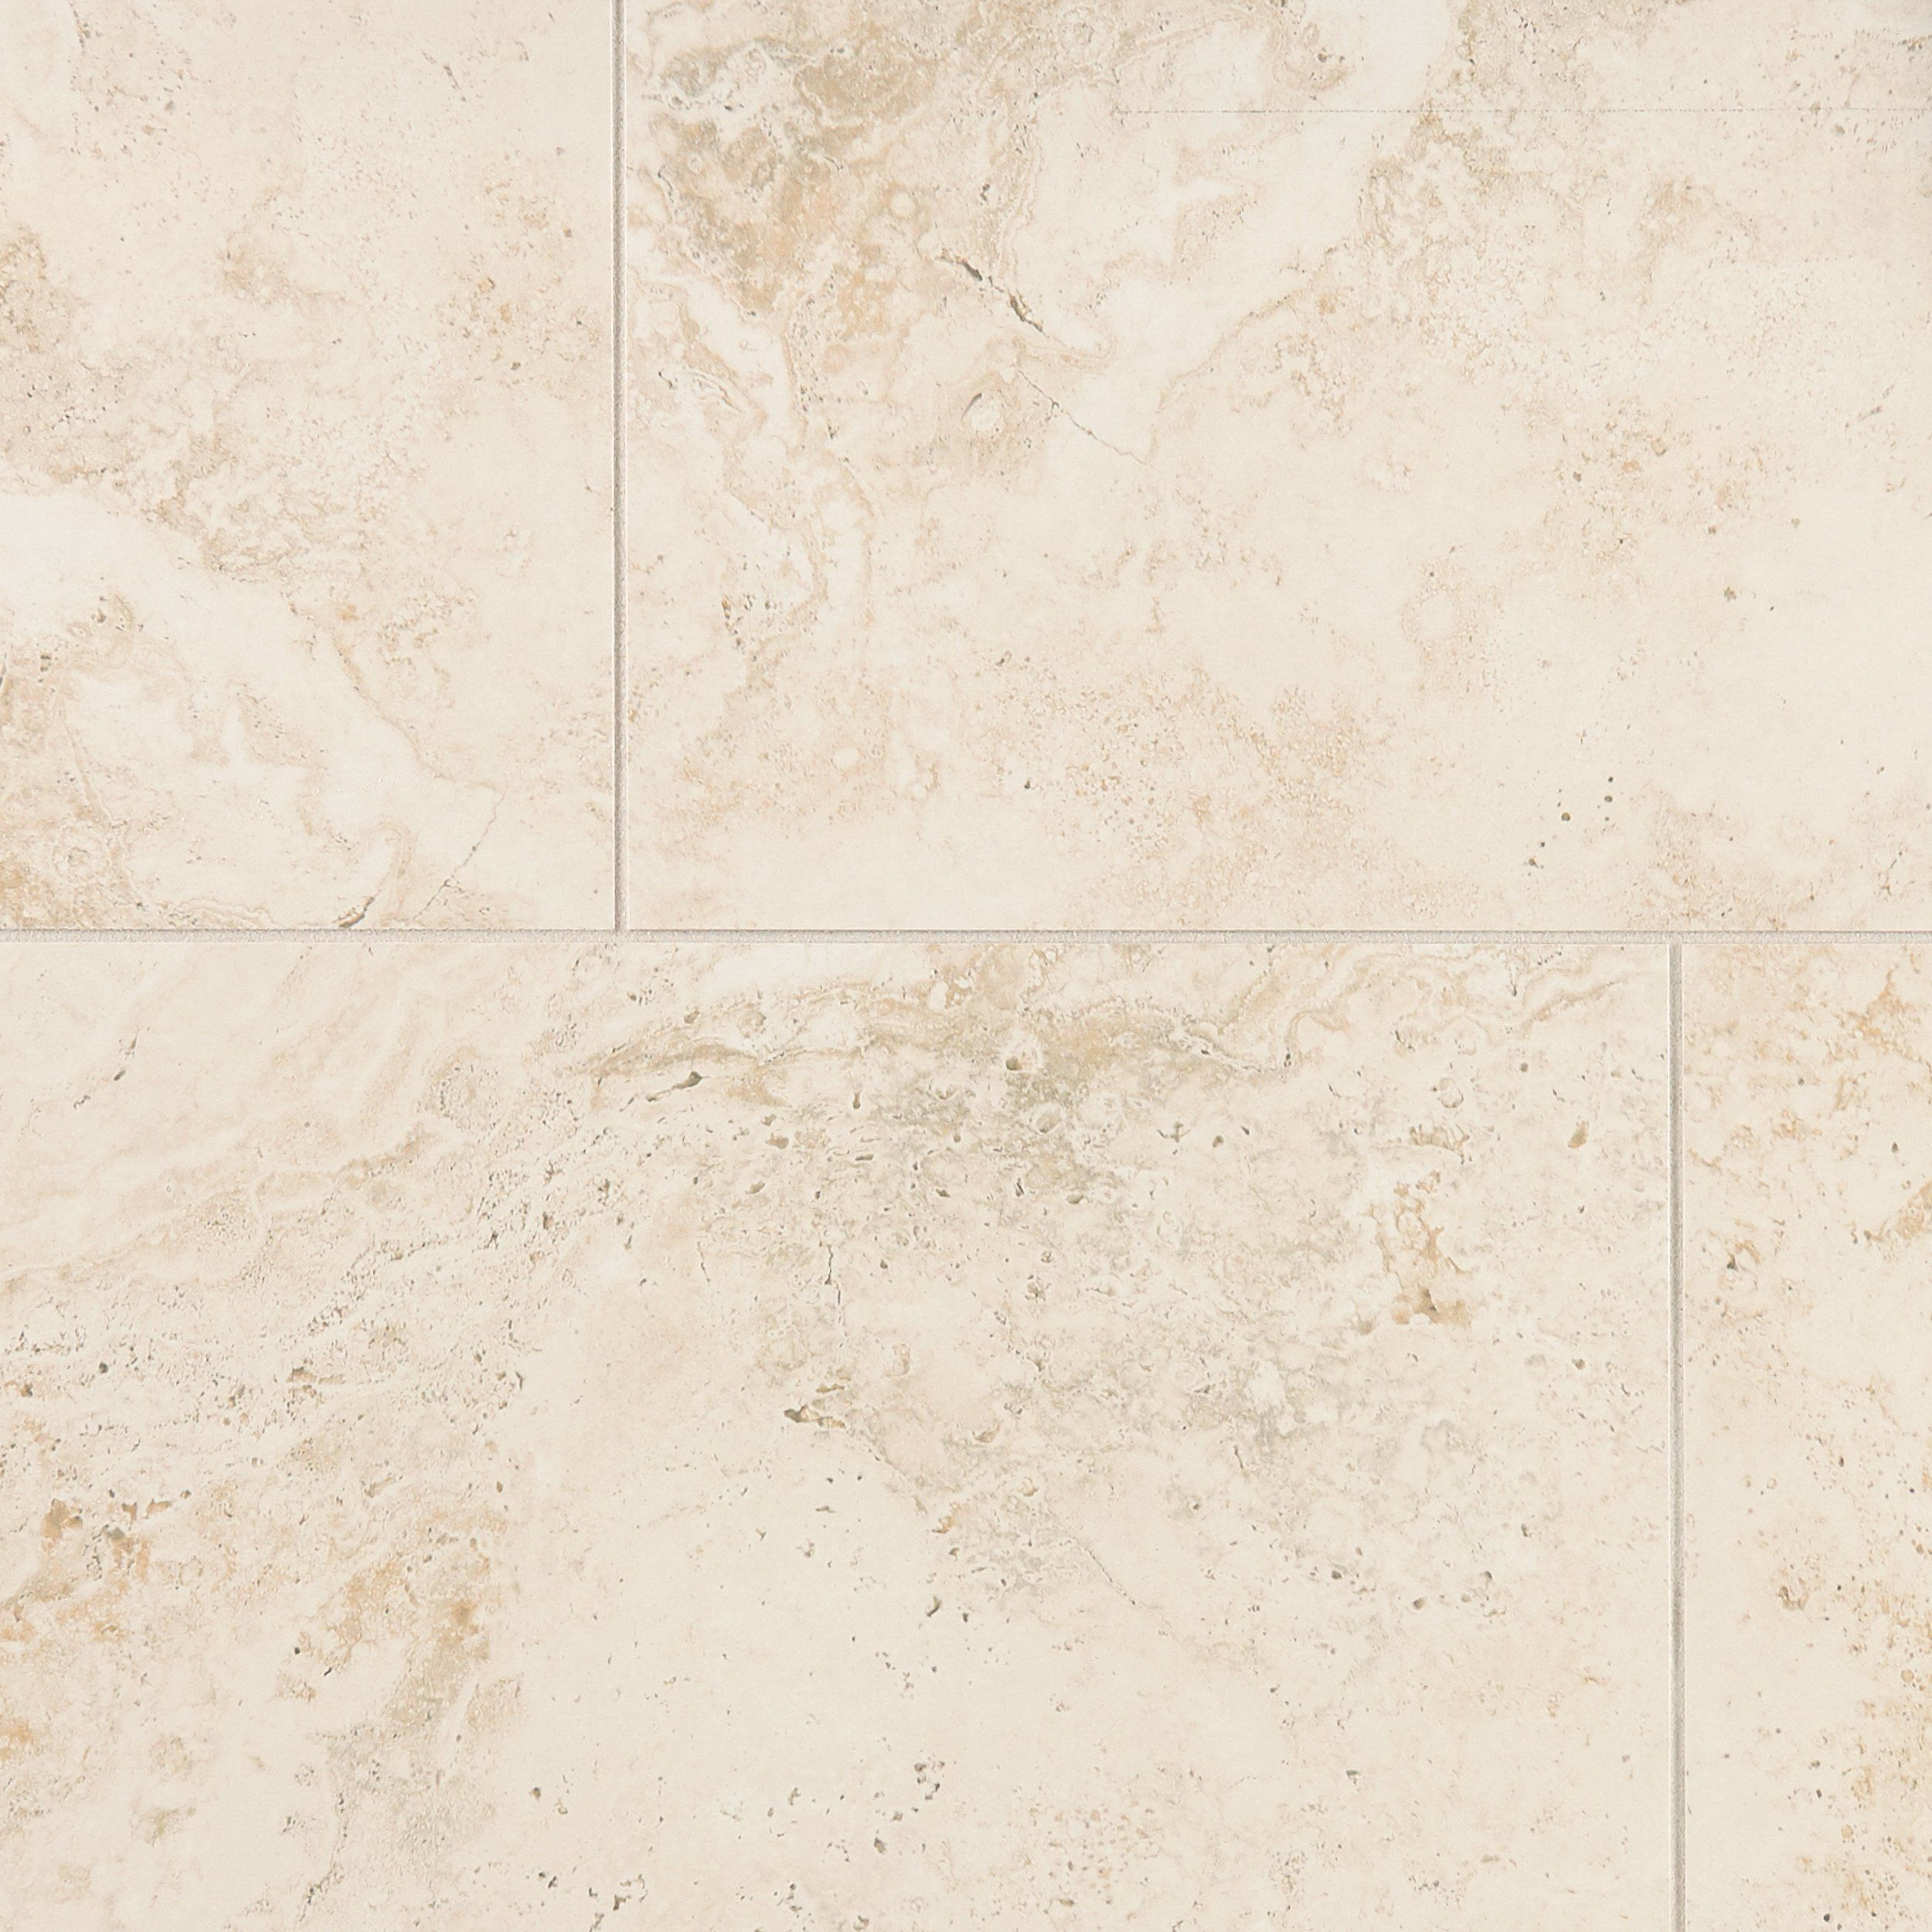 Ravenna Almond Porcelain Tile Porcelain Floor Tiles Porcelain Tile Tile Floor